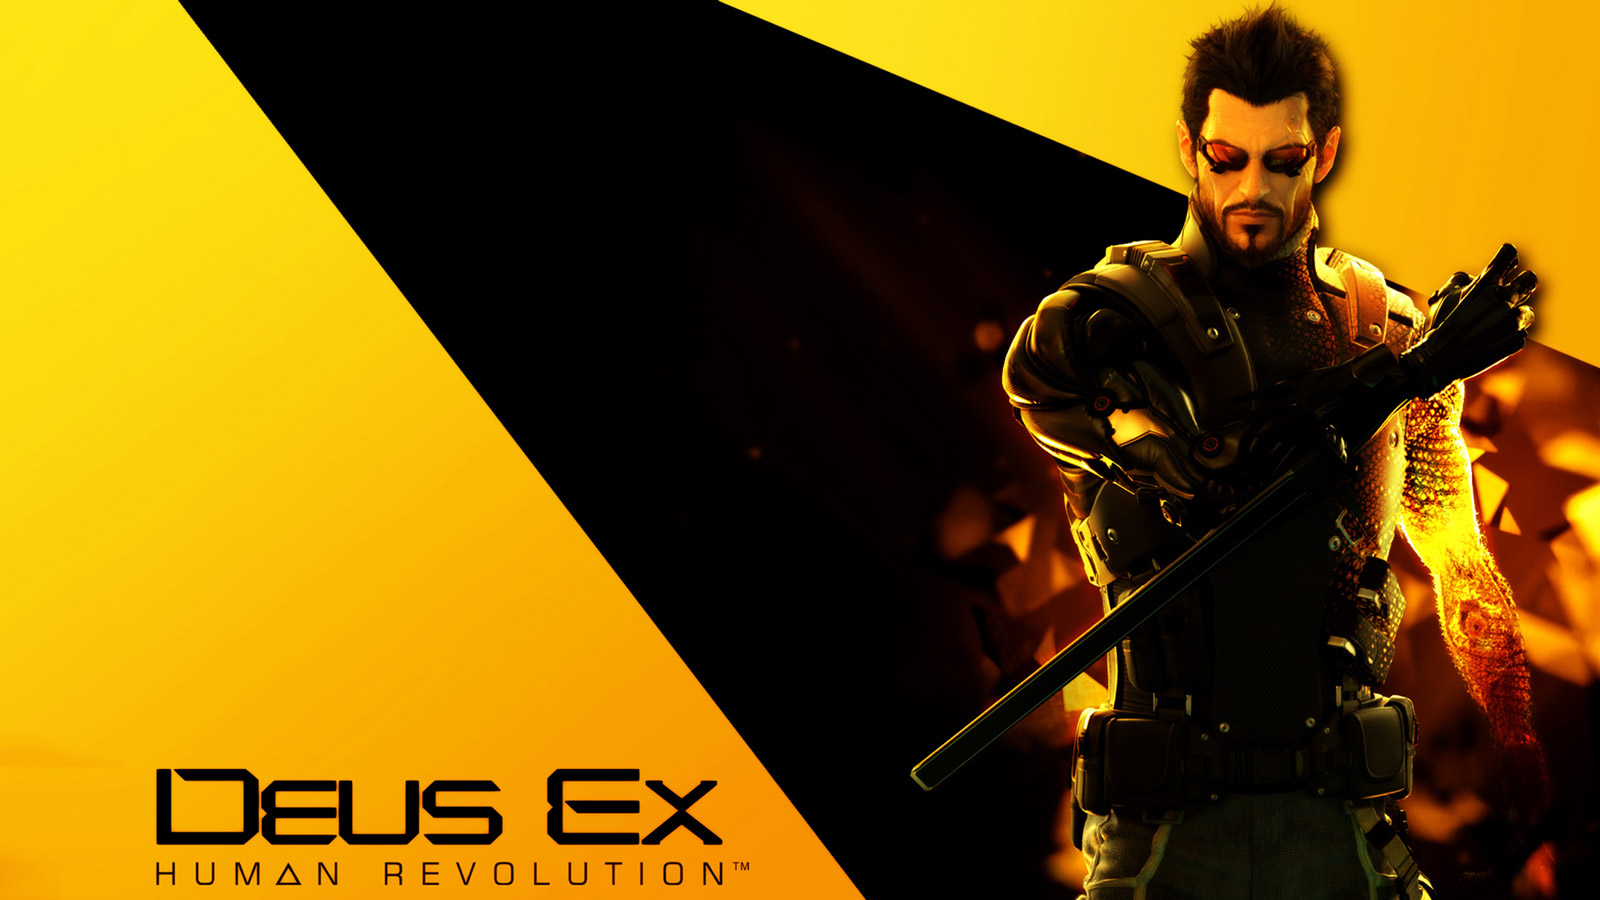 Deus Ex: Human Revolution Wallpaper in 1600x900